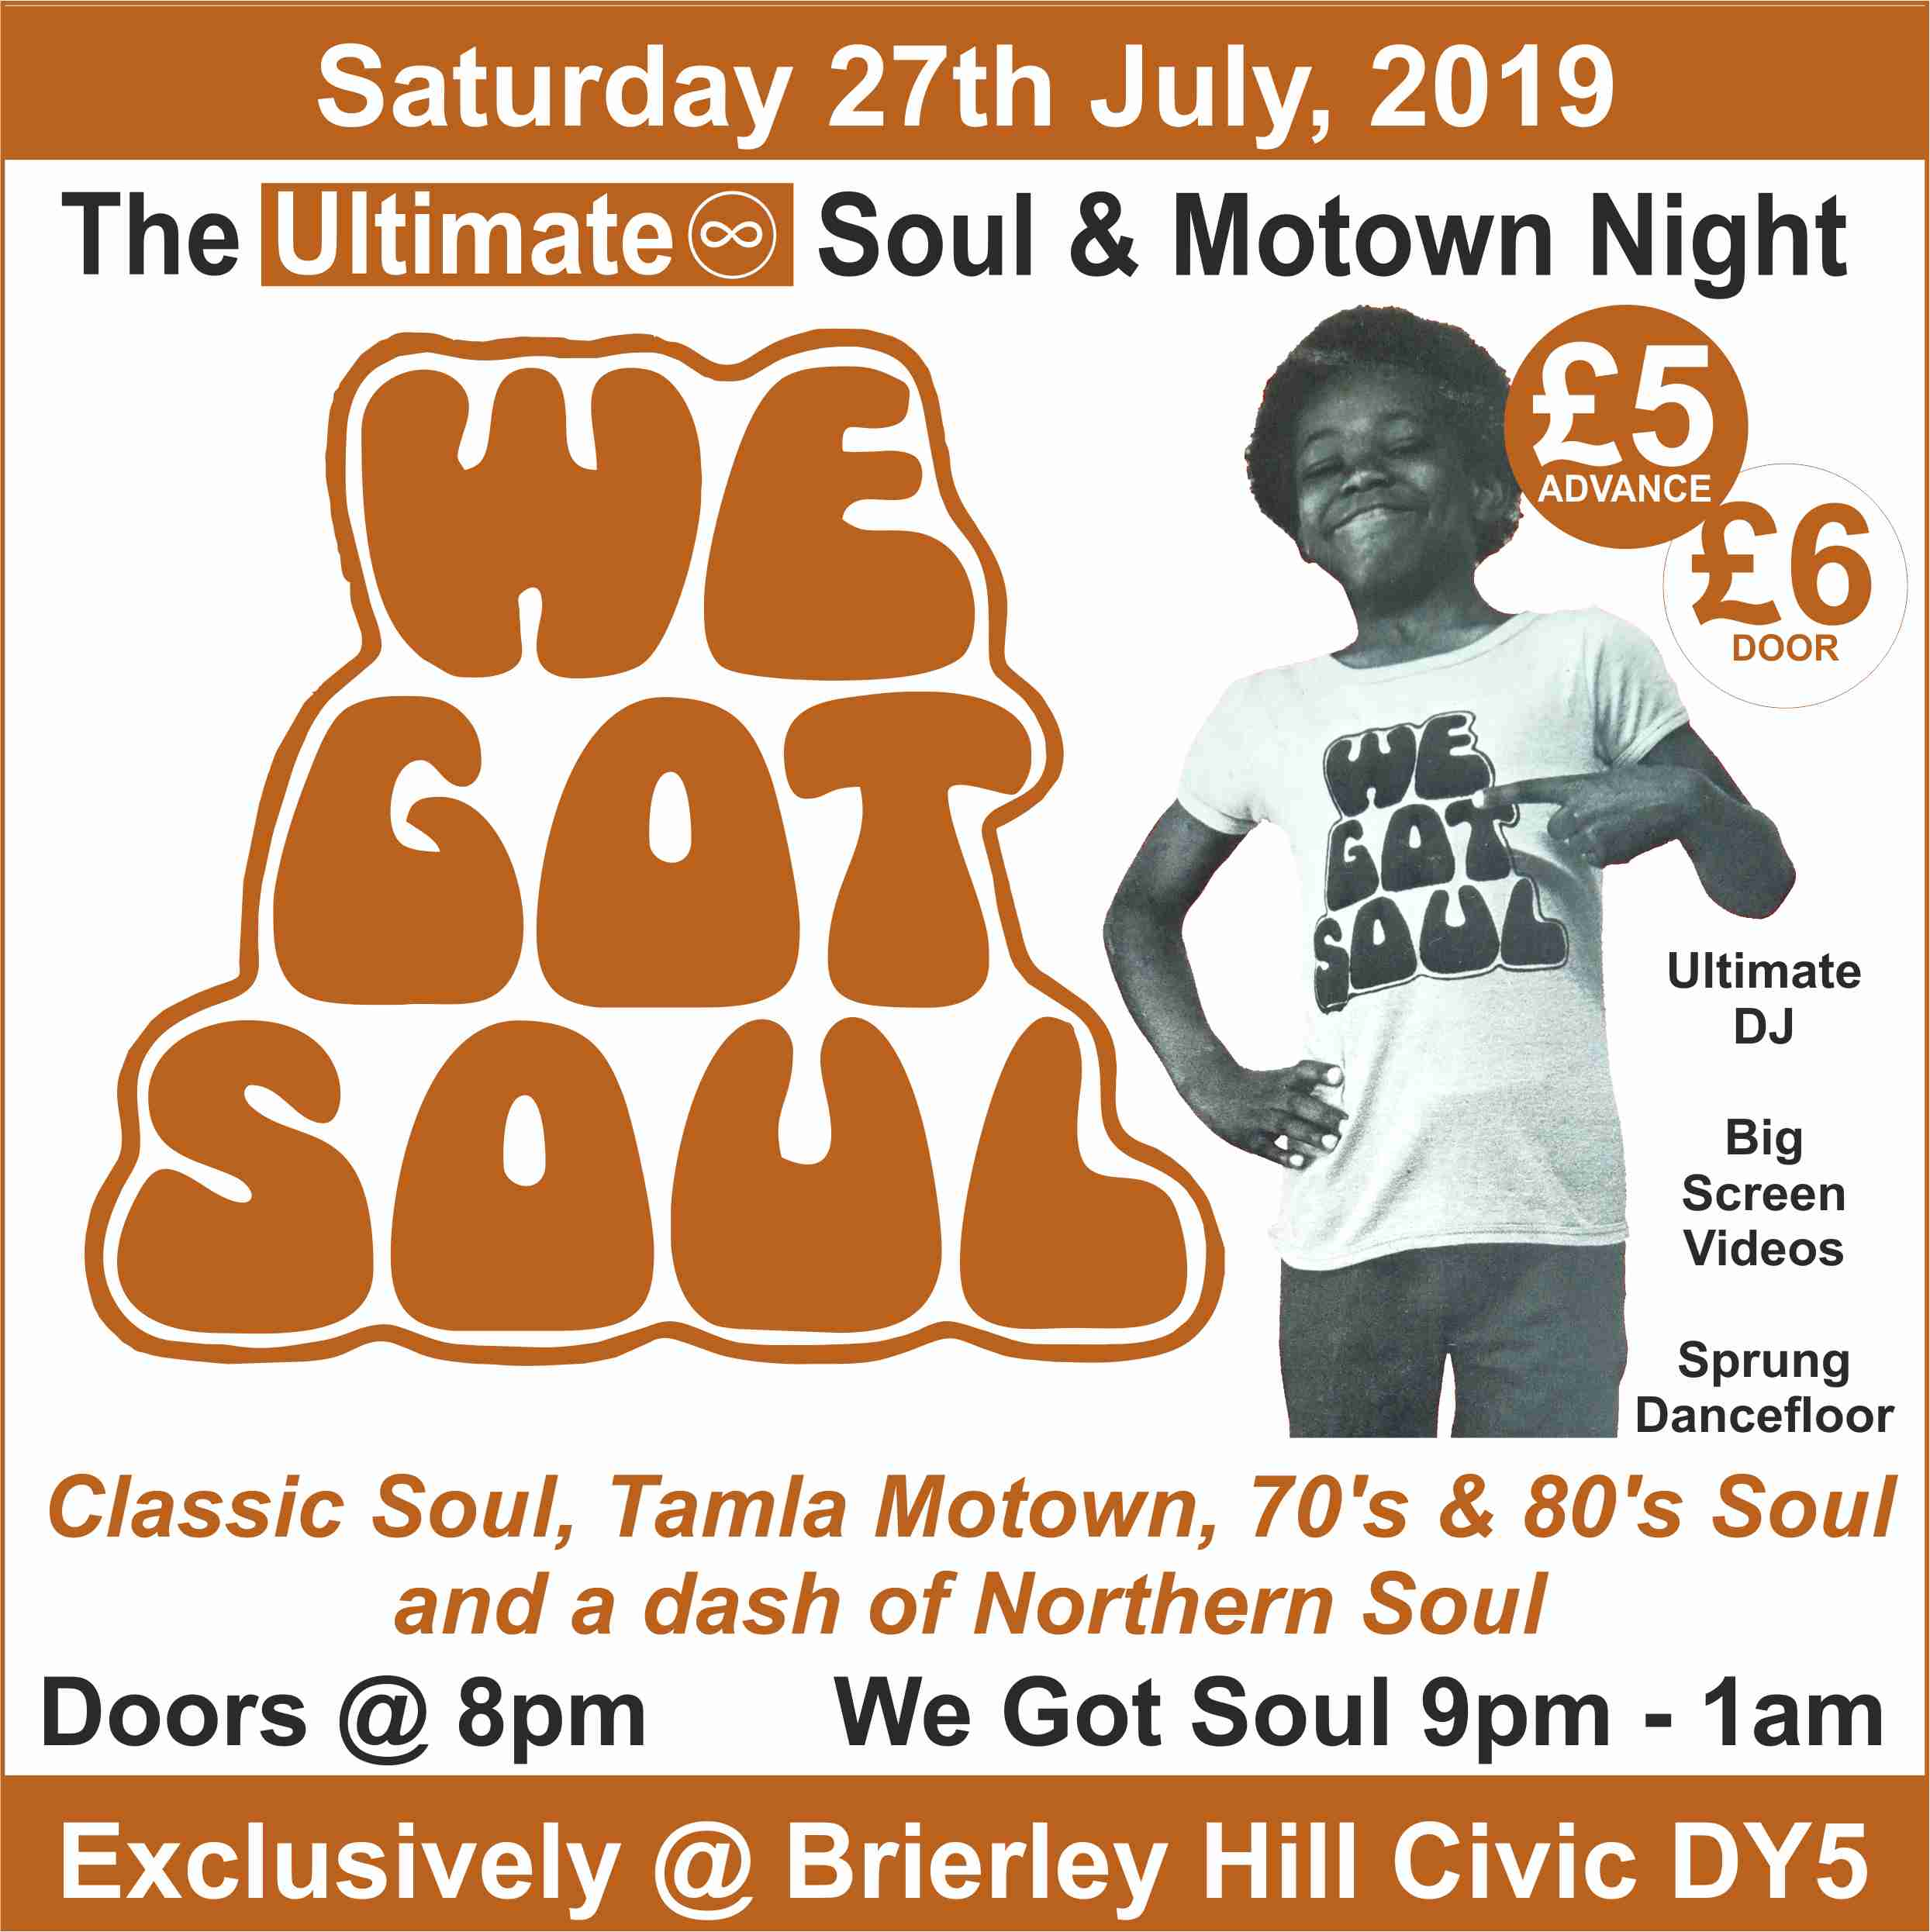 We Got Soul - The Ultimate Soul & Motown Night at Brierley Hill Civic Saturday 27 July 2019 banner image